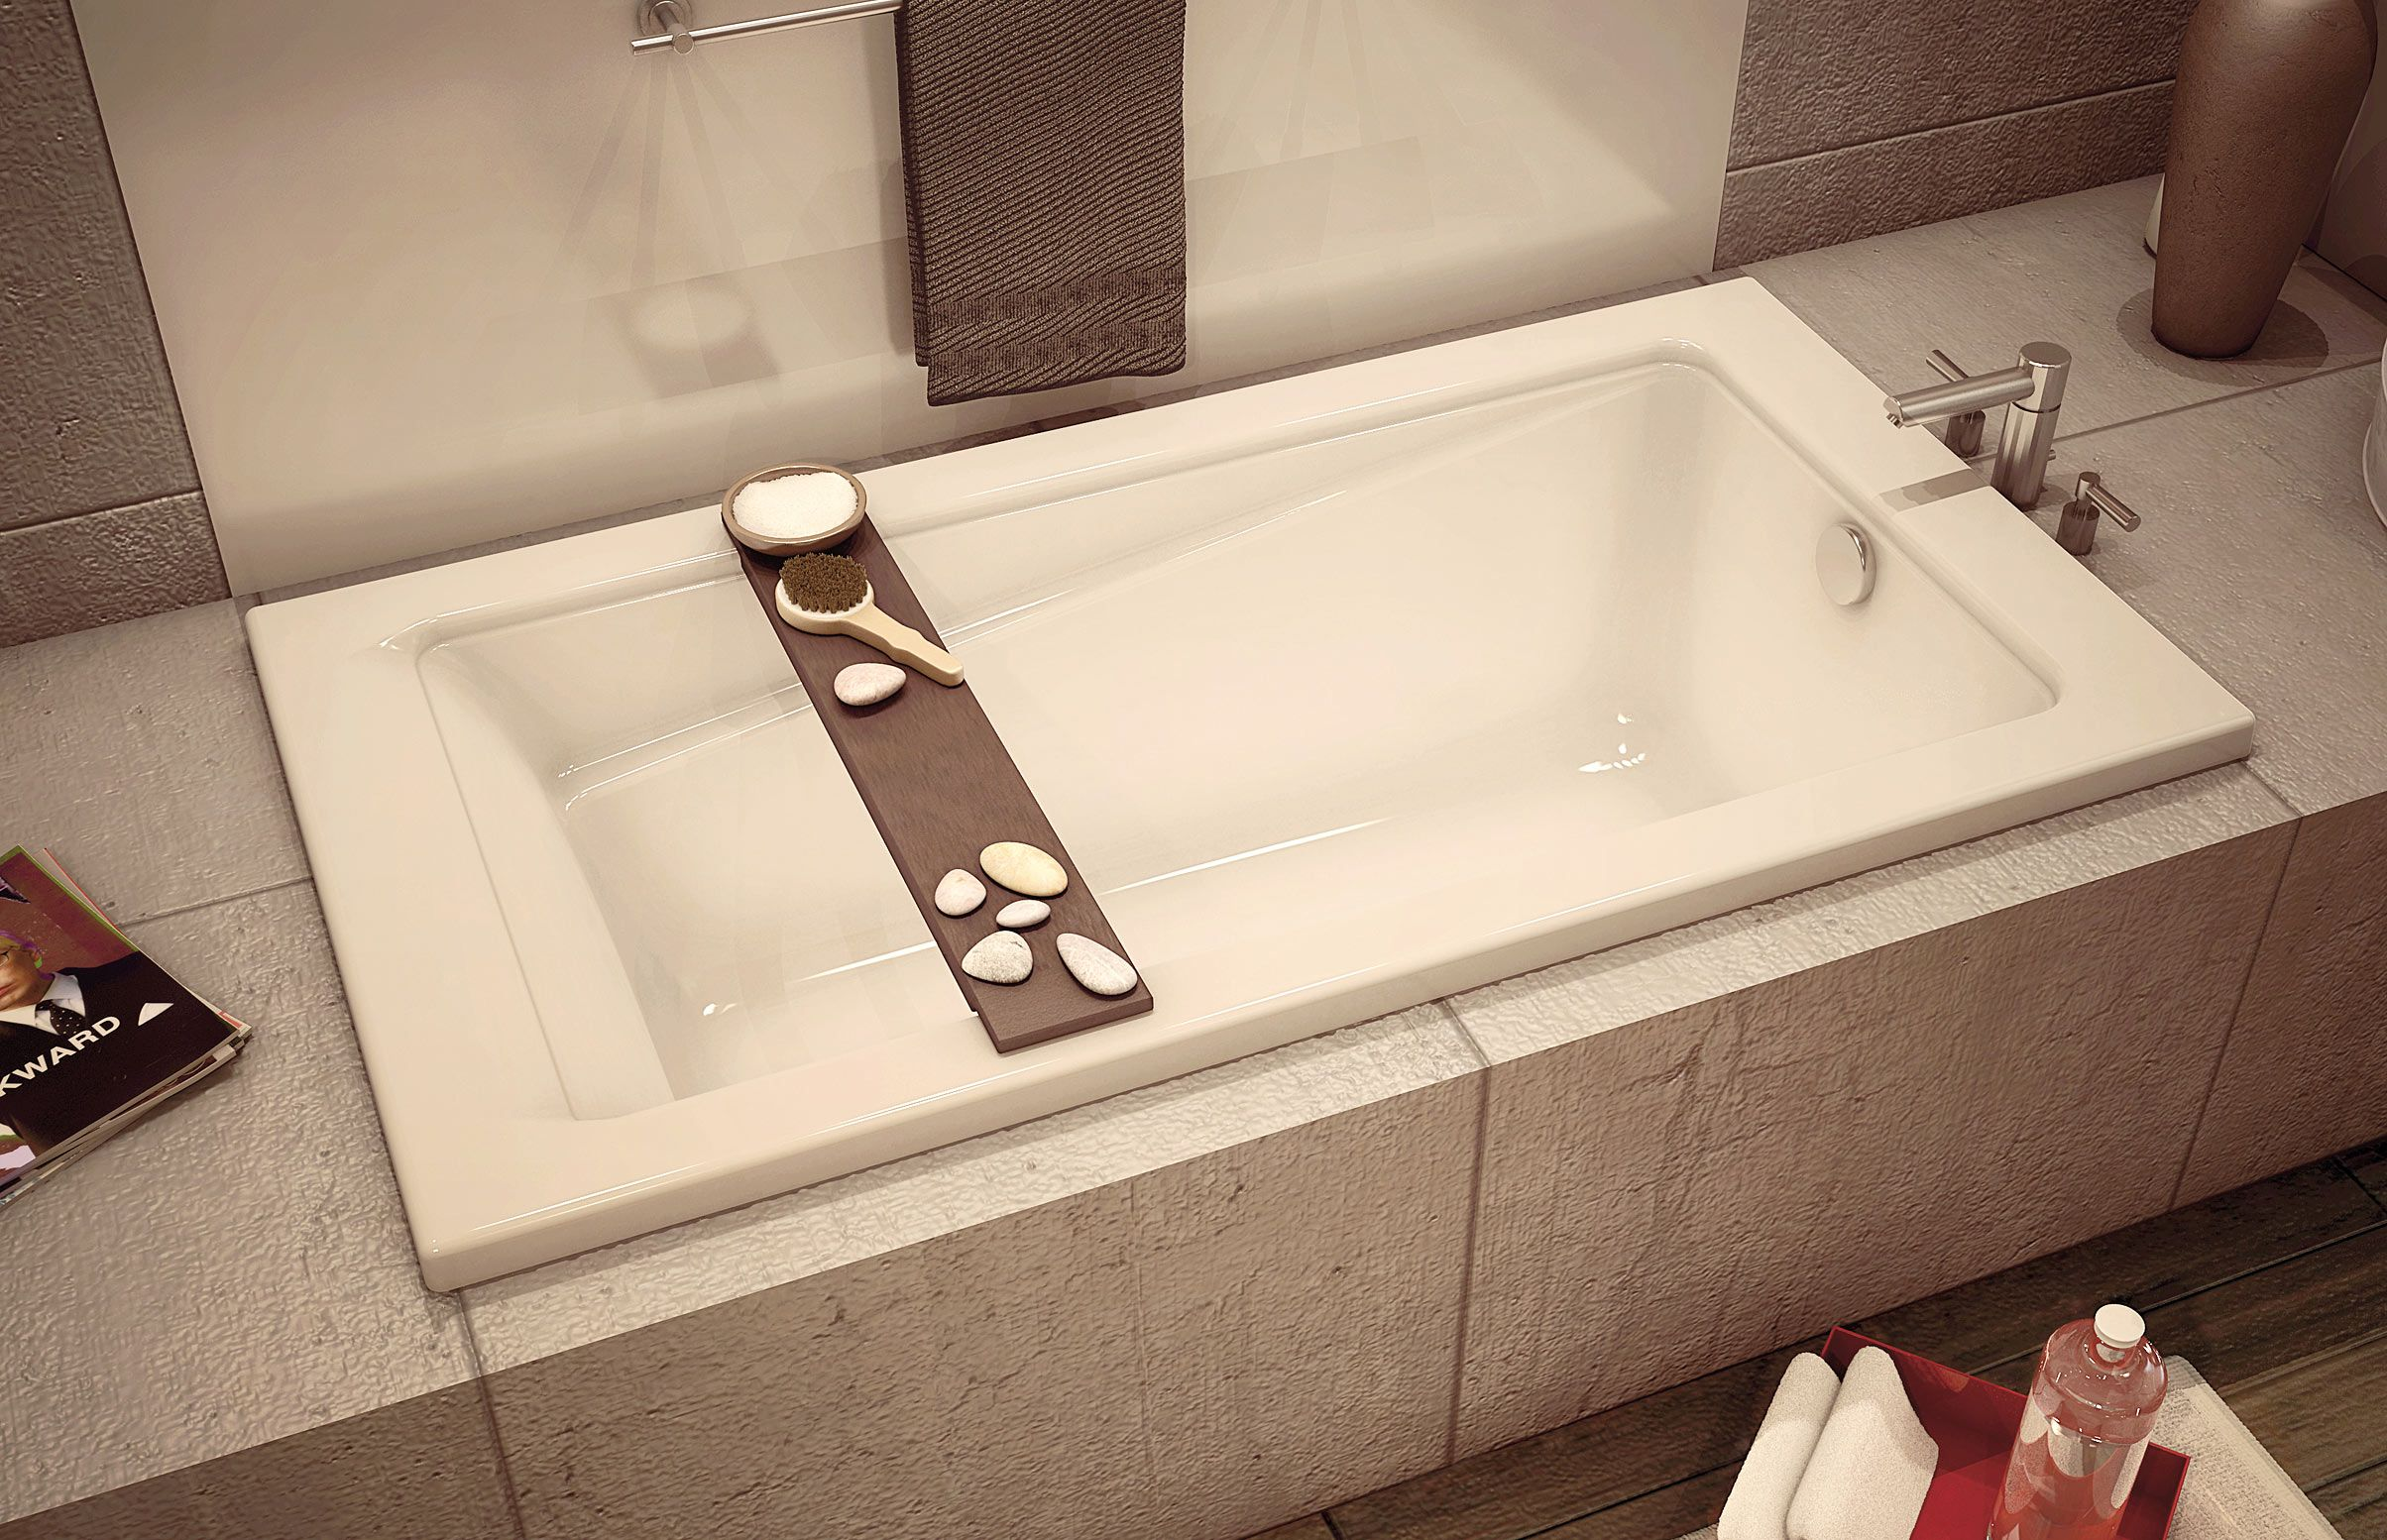 New Town 6032 Alcove Or Drop In Bathtub   Advanta By MAAX